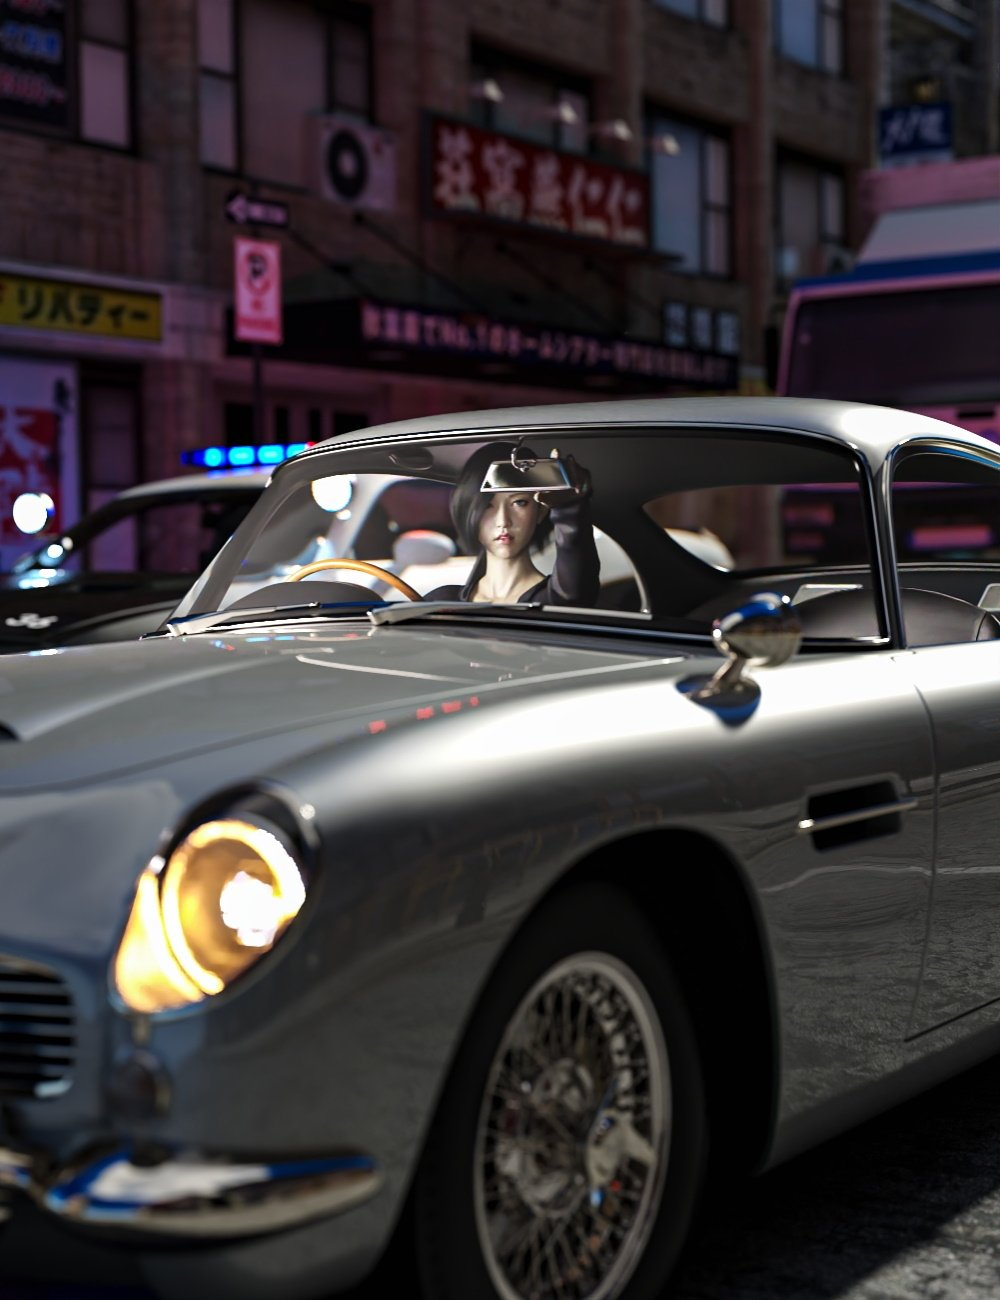 Majestic GT Poses for Genesis 8 by: mossberg, 3D Models by Daz 3D